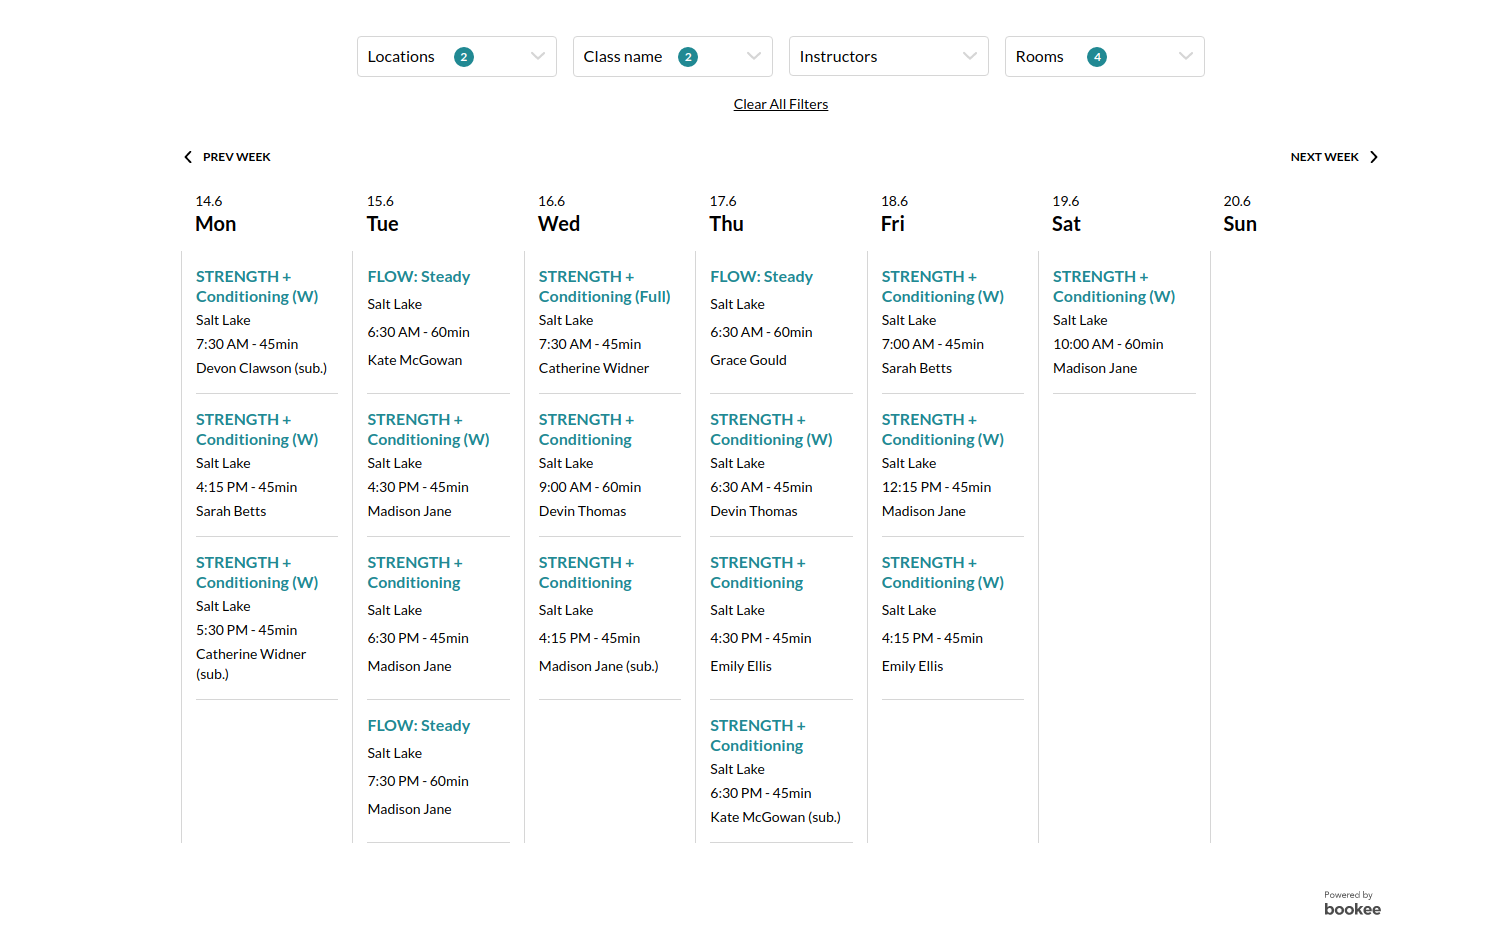 Seek Studio's scheduling web-page for direct class bookings, powered by bookee